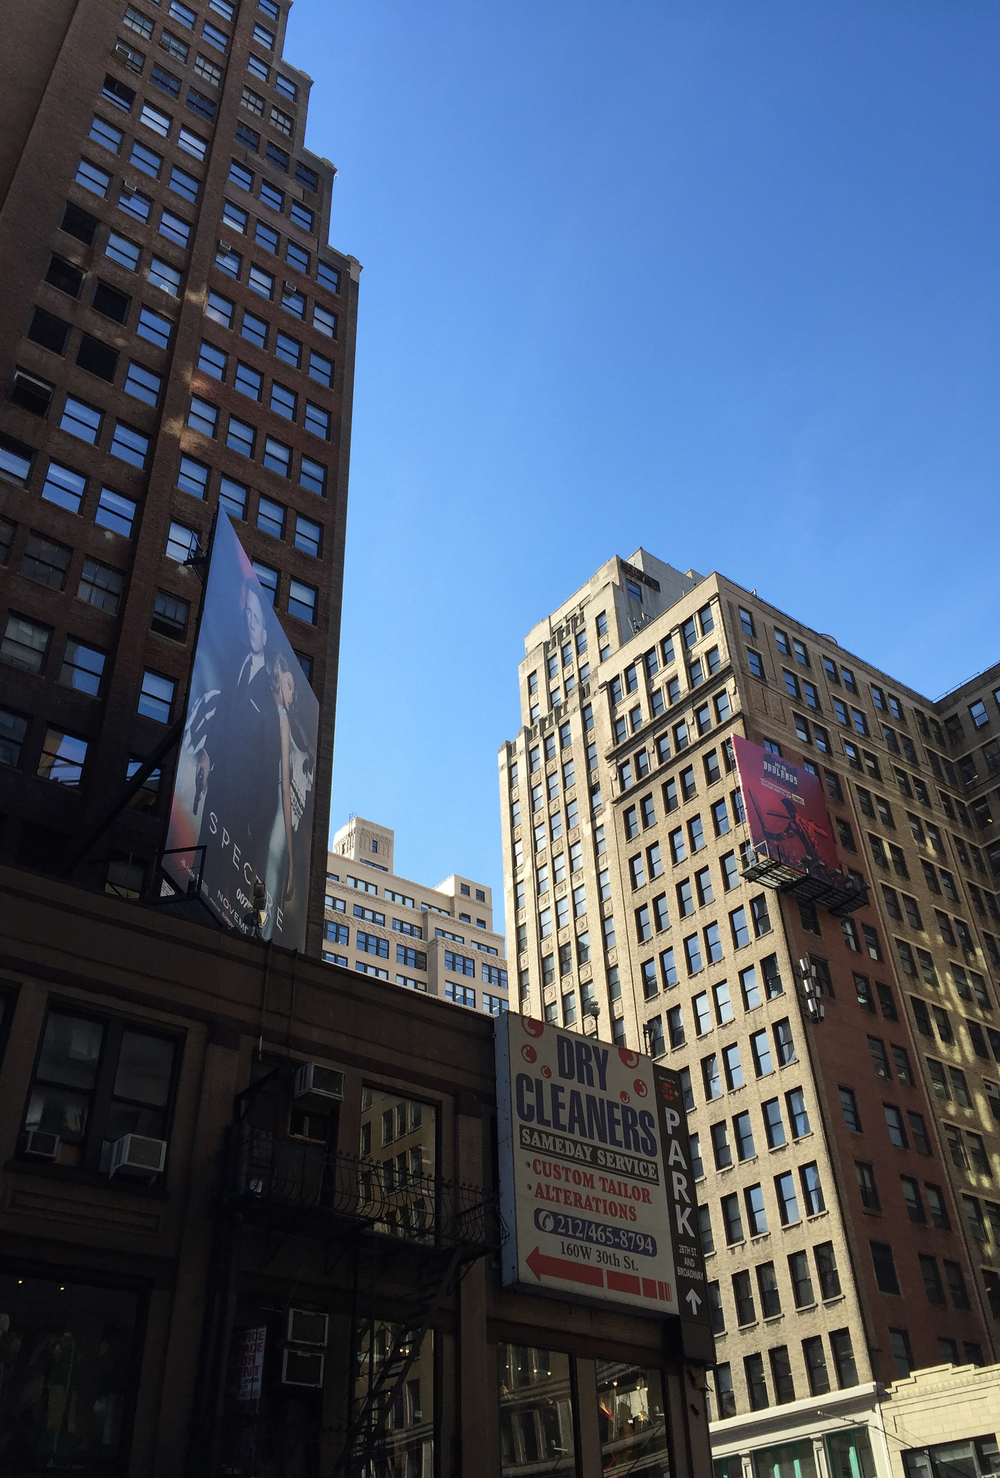 Looking up at the skyscrapers on the corner of West 30th street and 7th avenue  on a sunny autumn afternoon - November 9, 2015